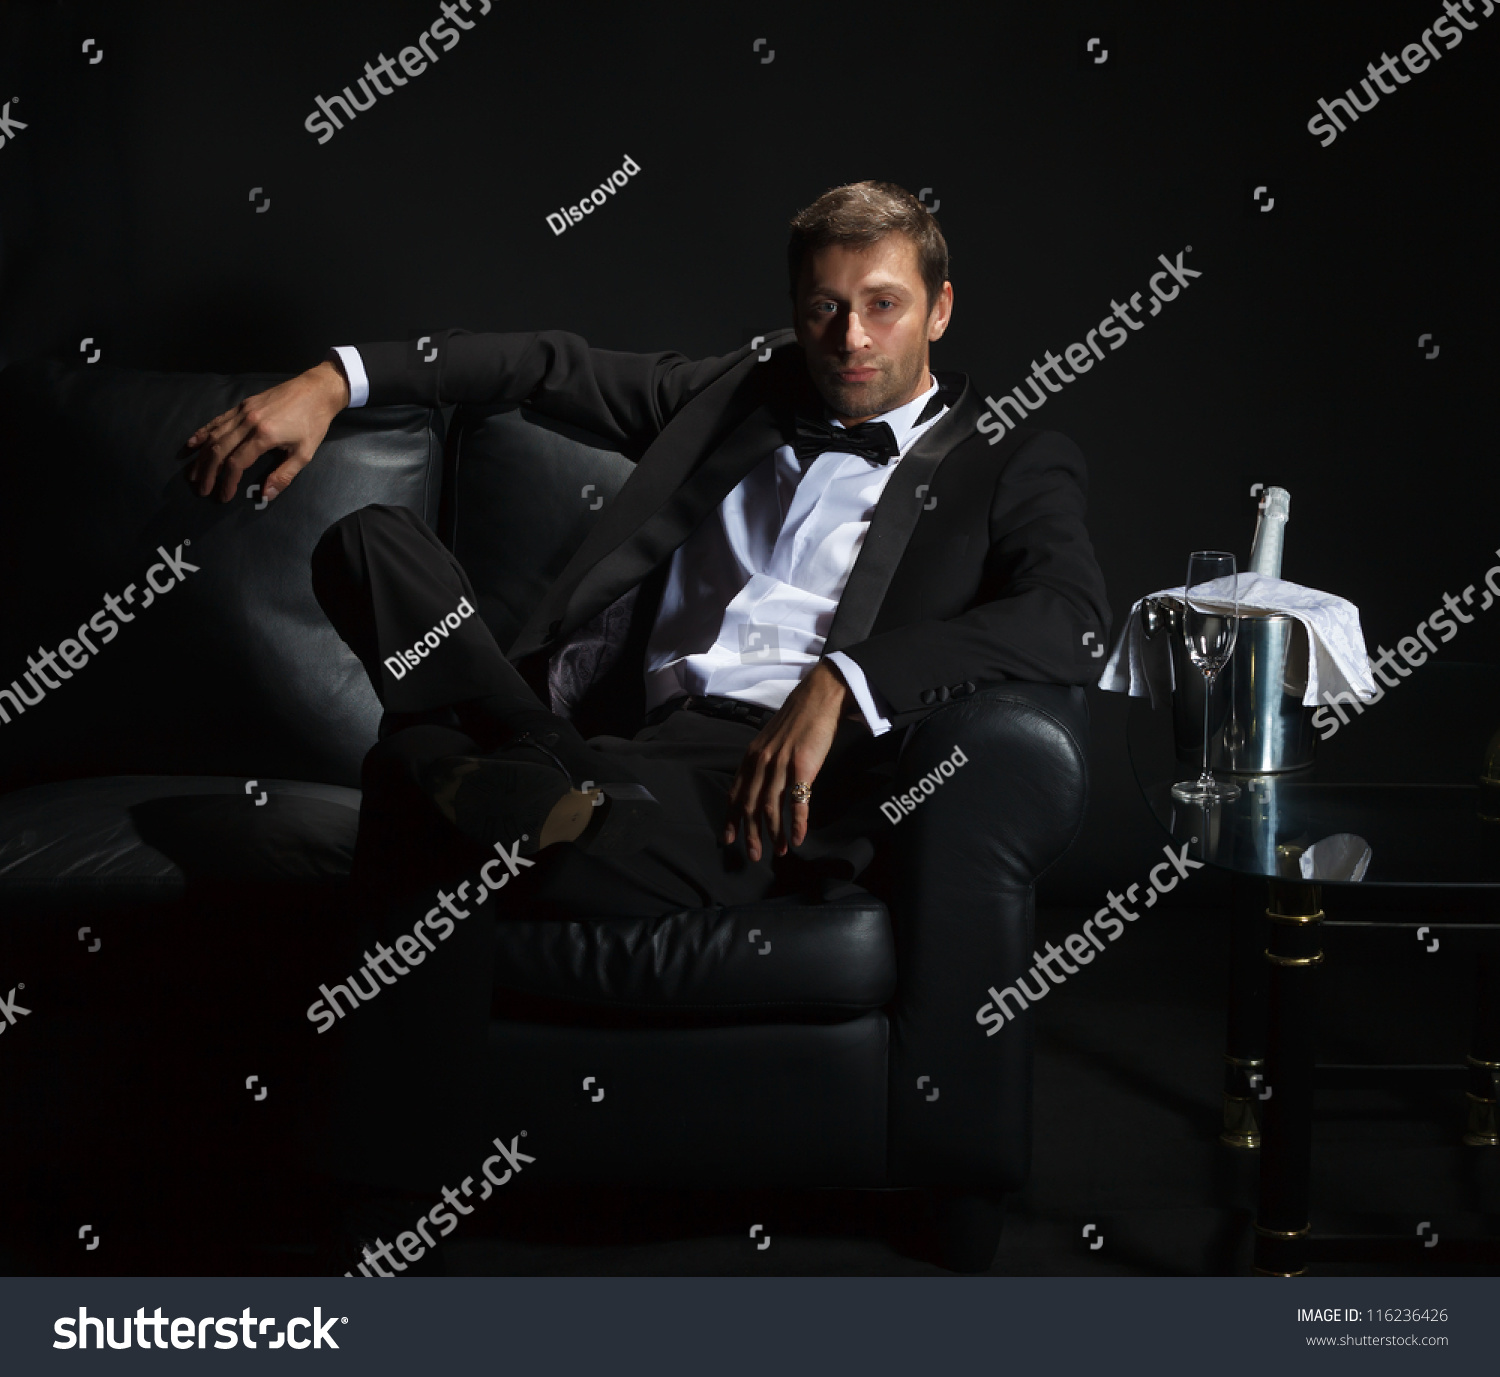 Sexy Handsome Man In Tuxedo Sitting In The Darkness Of A ...